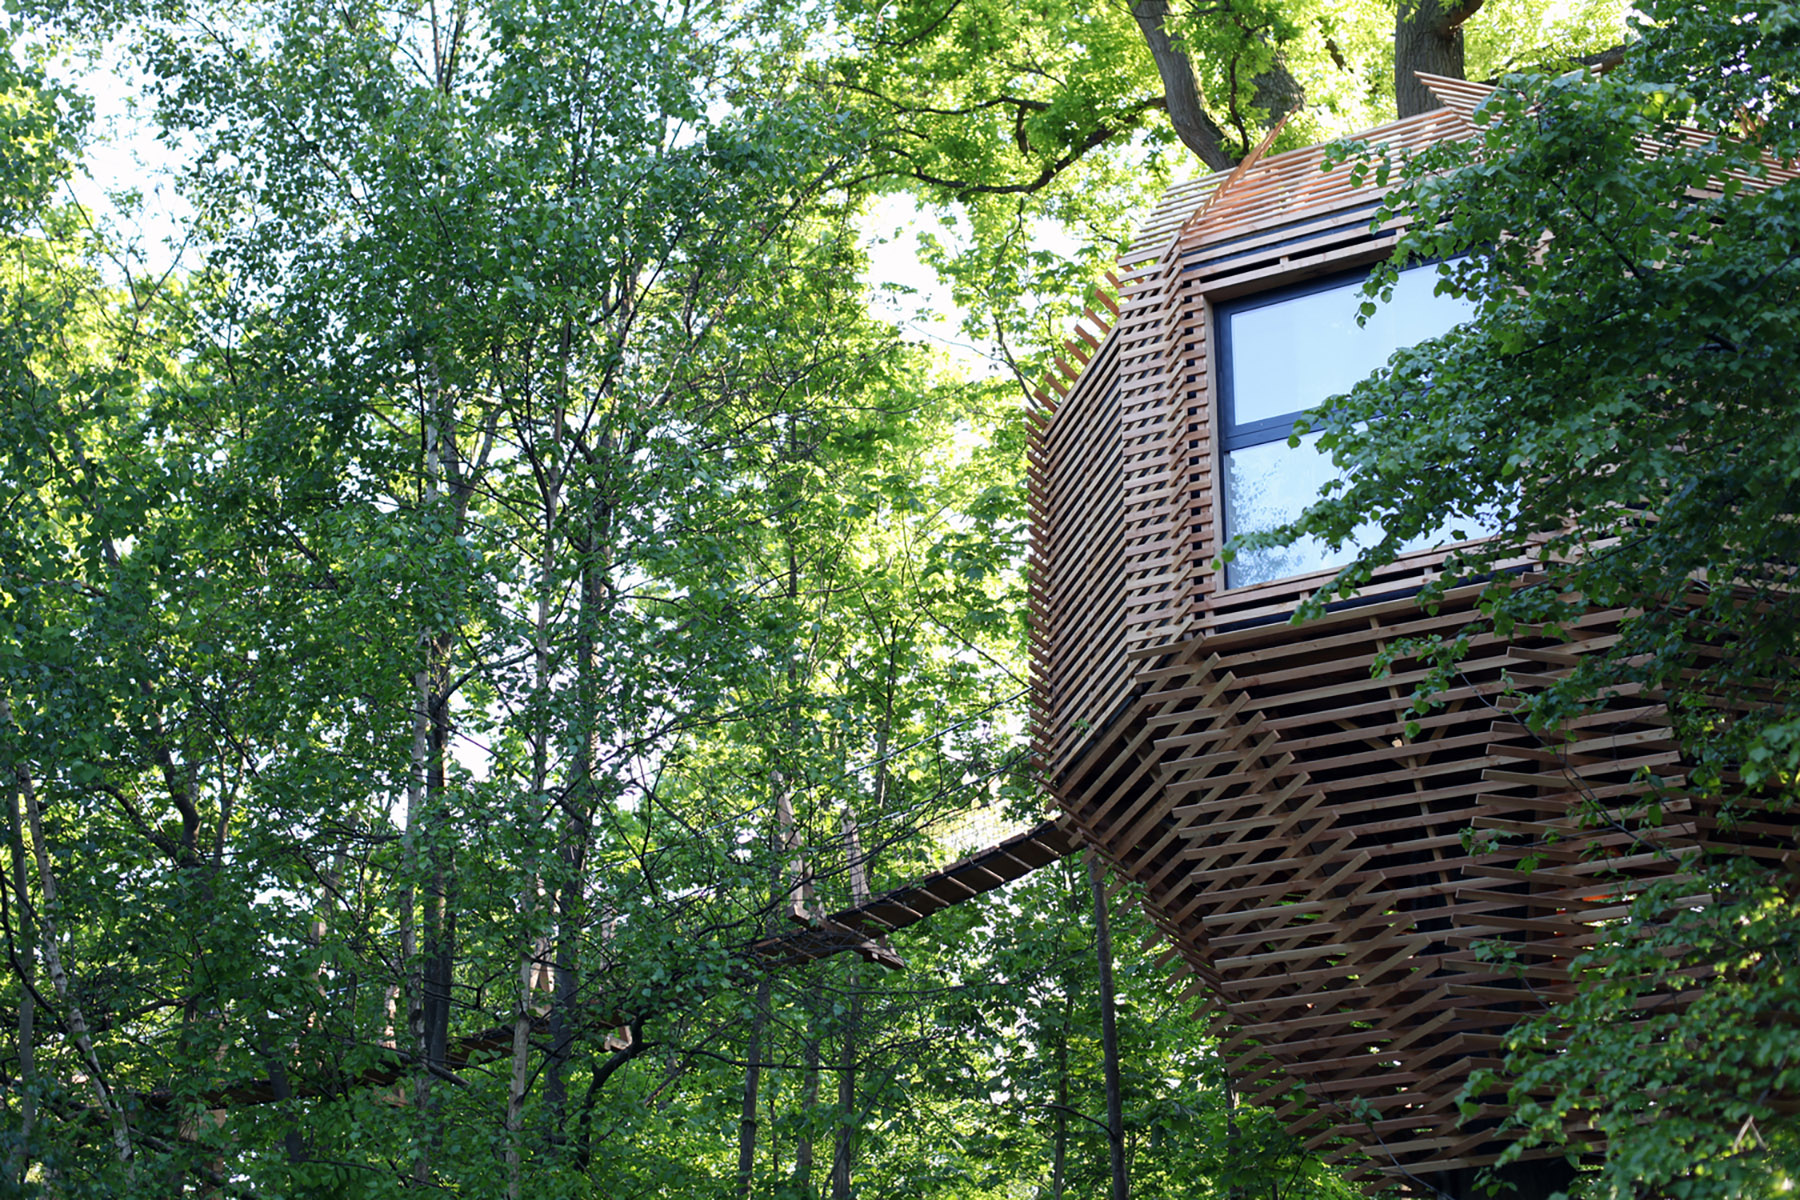 iGNANT-Architecture-Atelier-Lavit-Origin-Tree-House-002